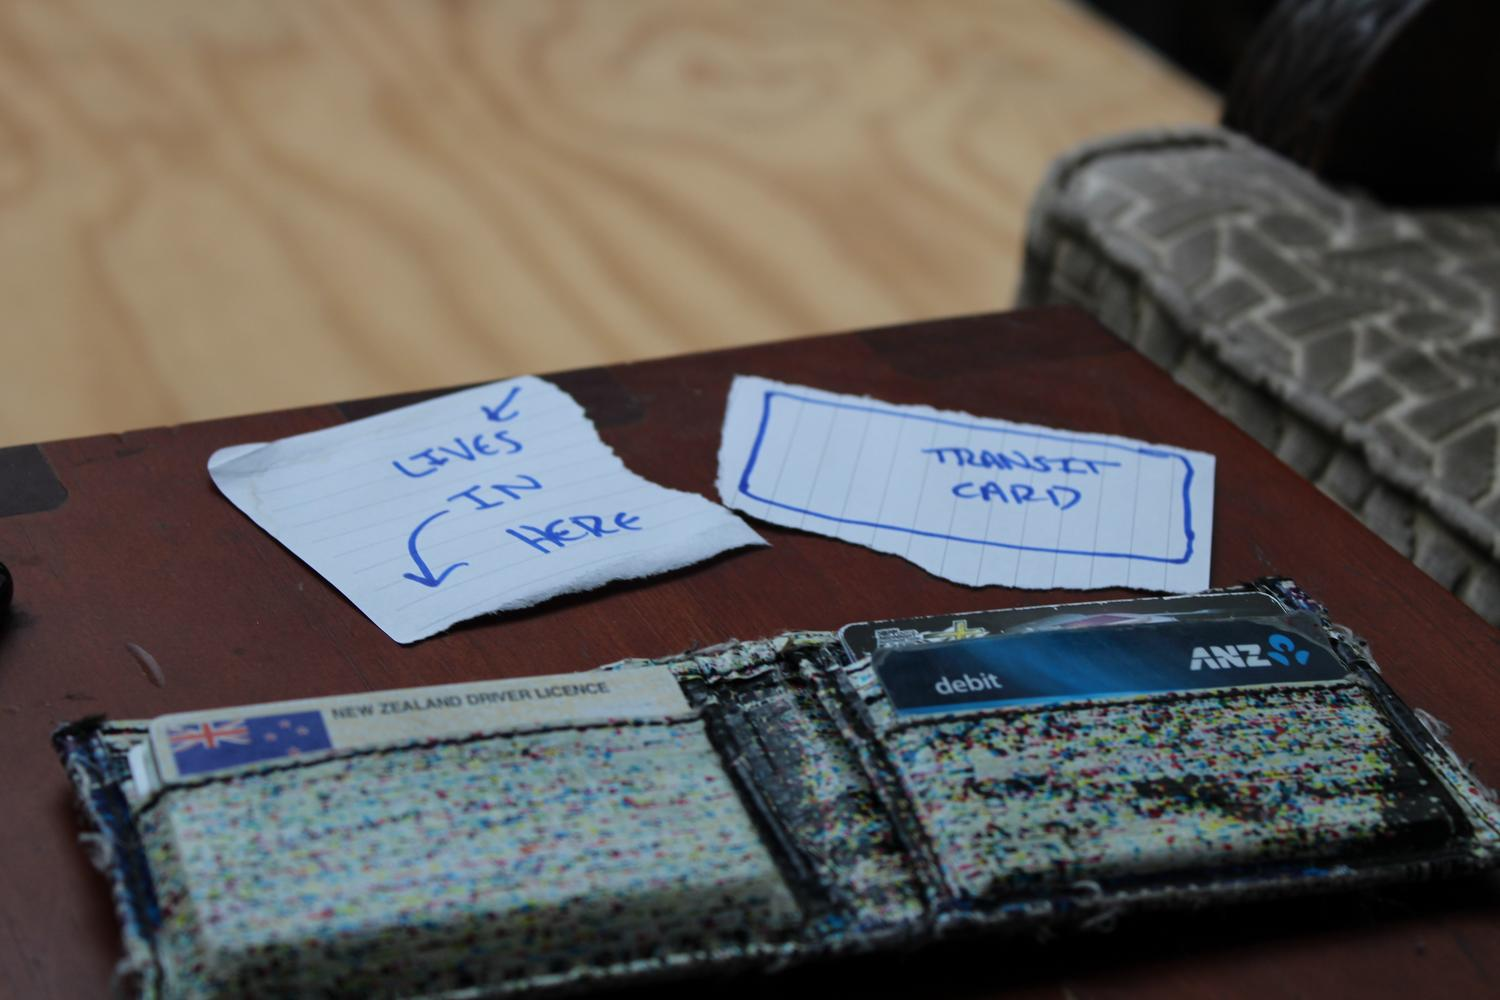 A close up photo of a table with my wallet folded open on it. A piece of paper represents my transit card as I no longer had it at the time of writing this post.